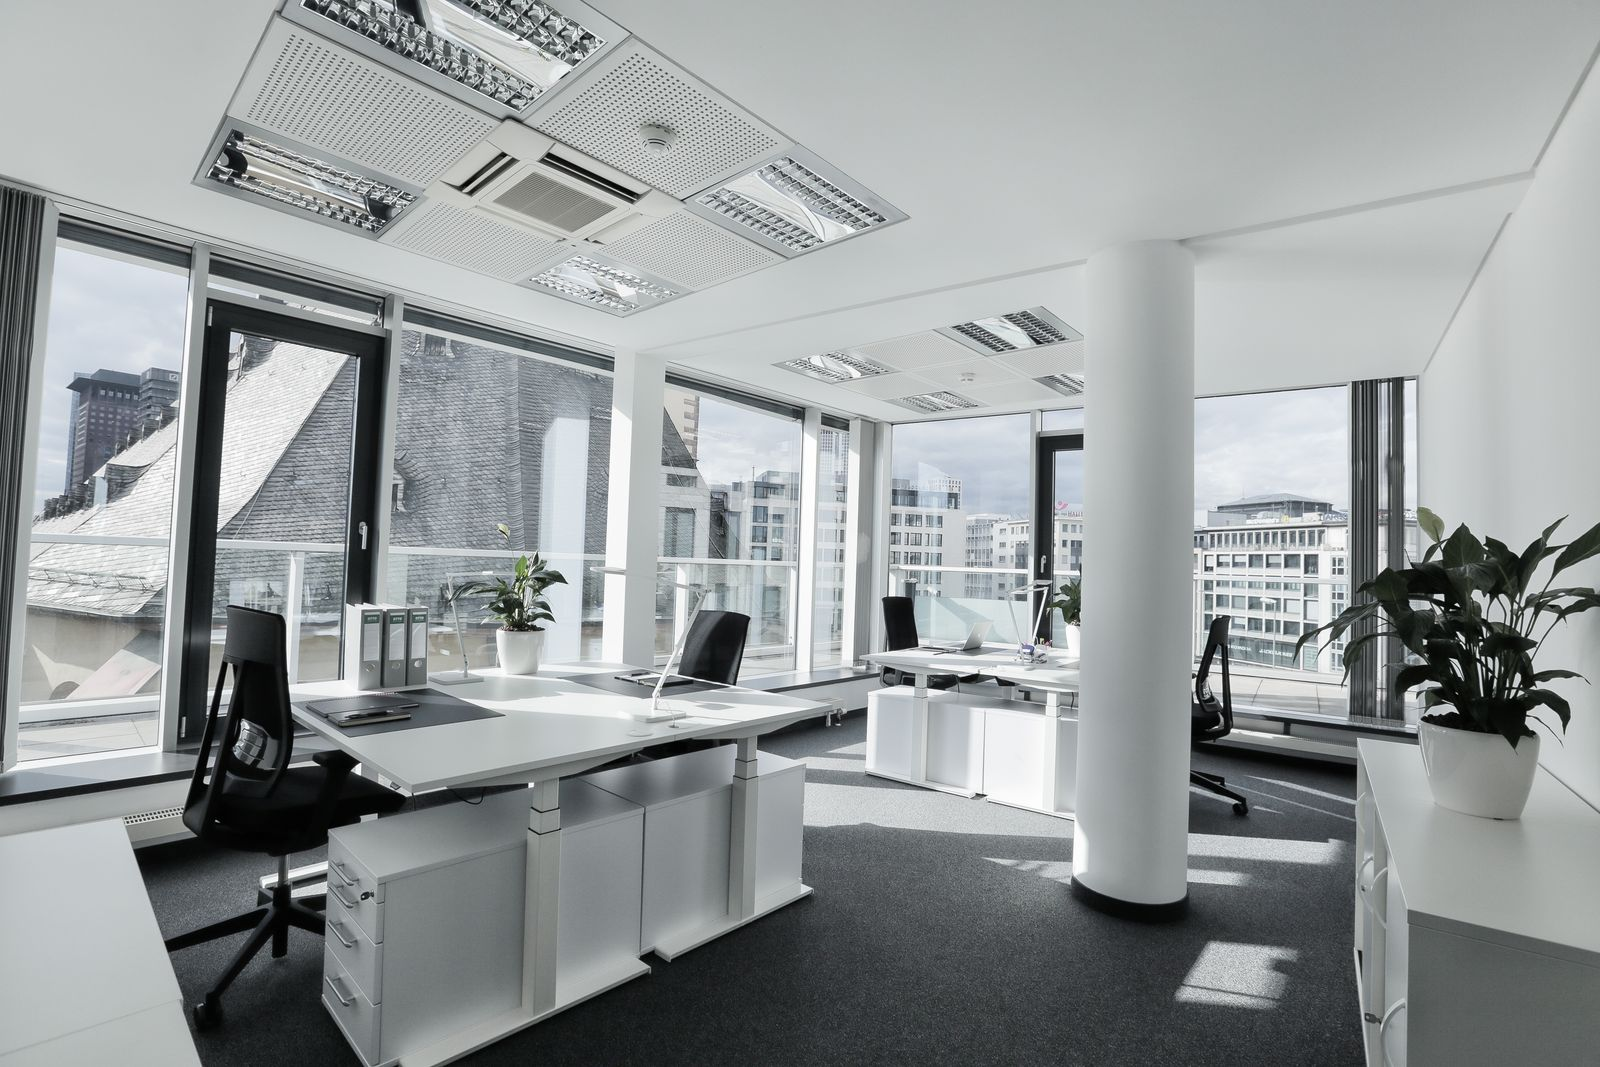 Business Center in Frankfurt